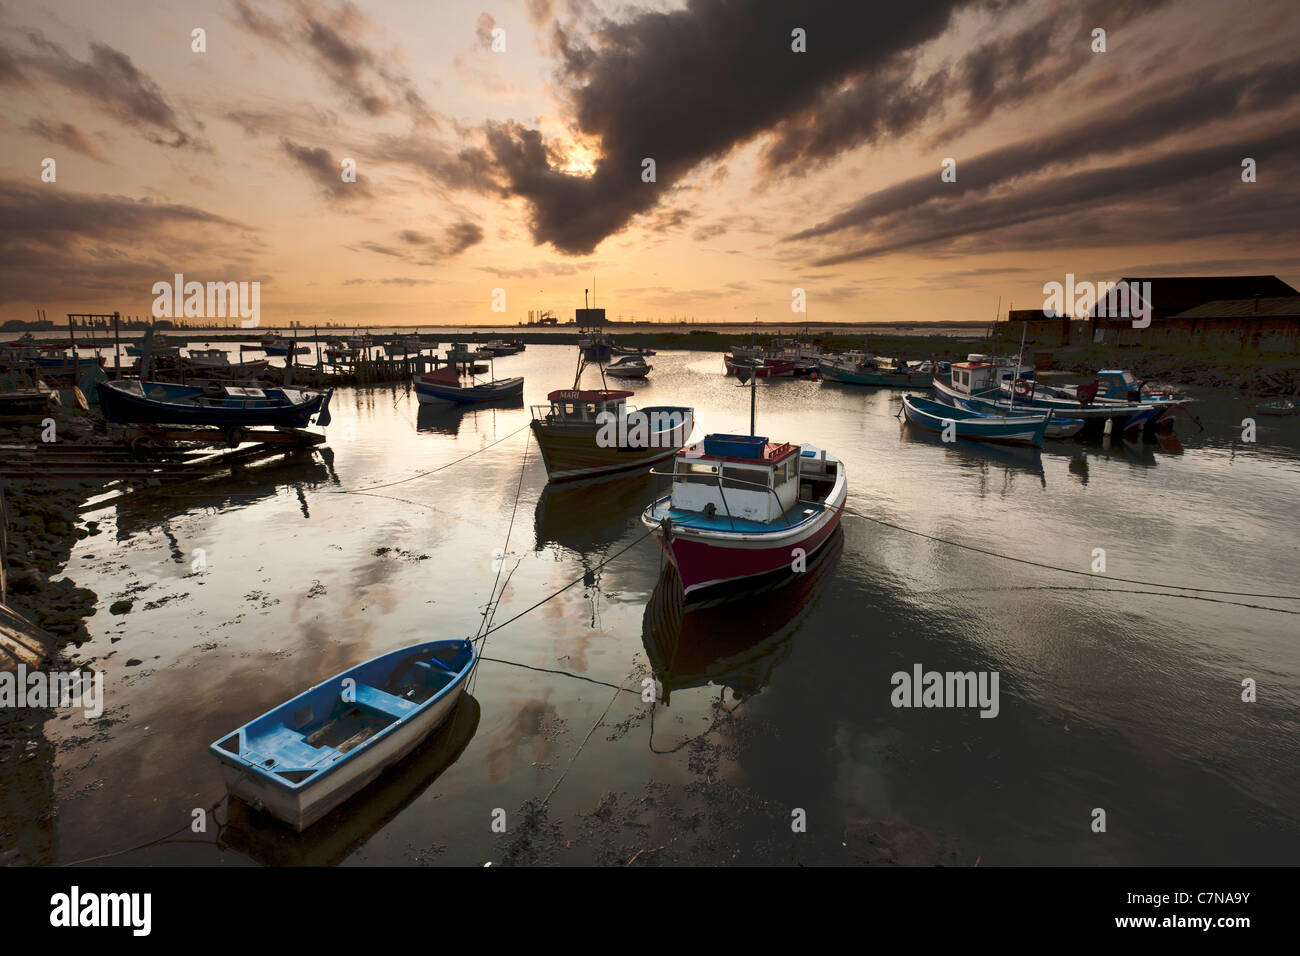 Paddys Hole, South Gare, Redcar and Cleveland - Stock Image